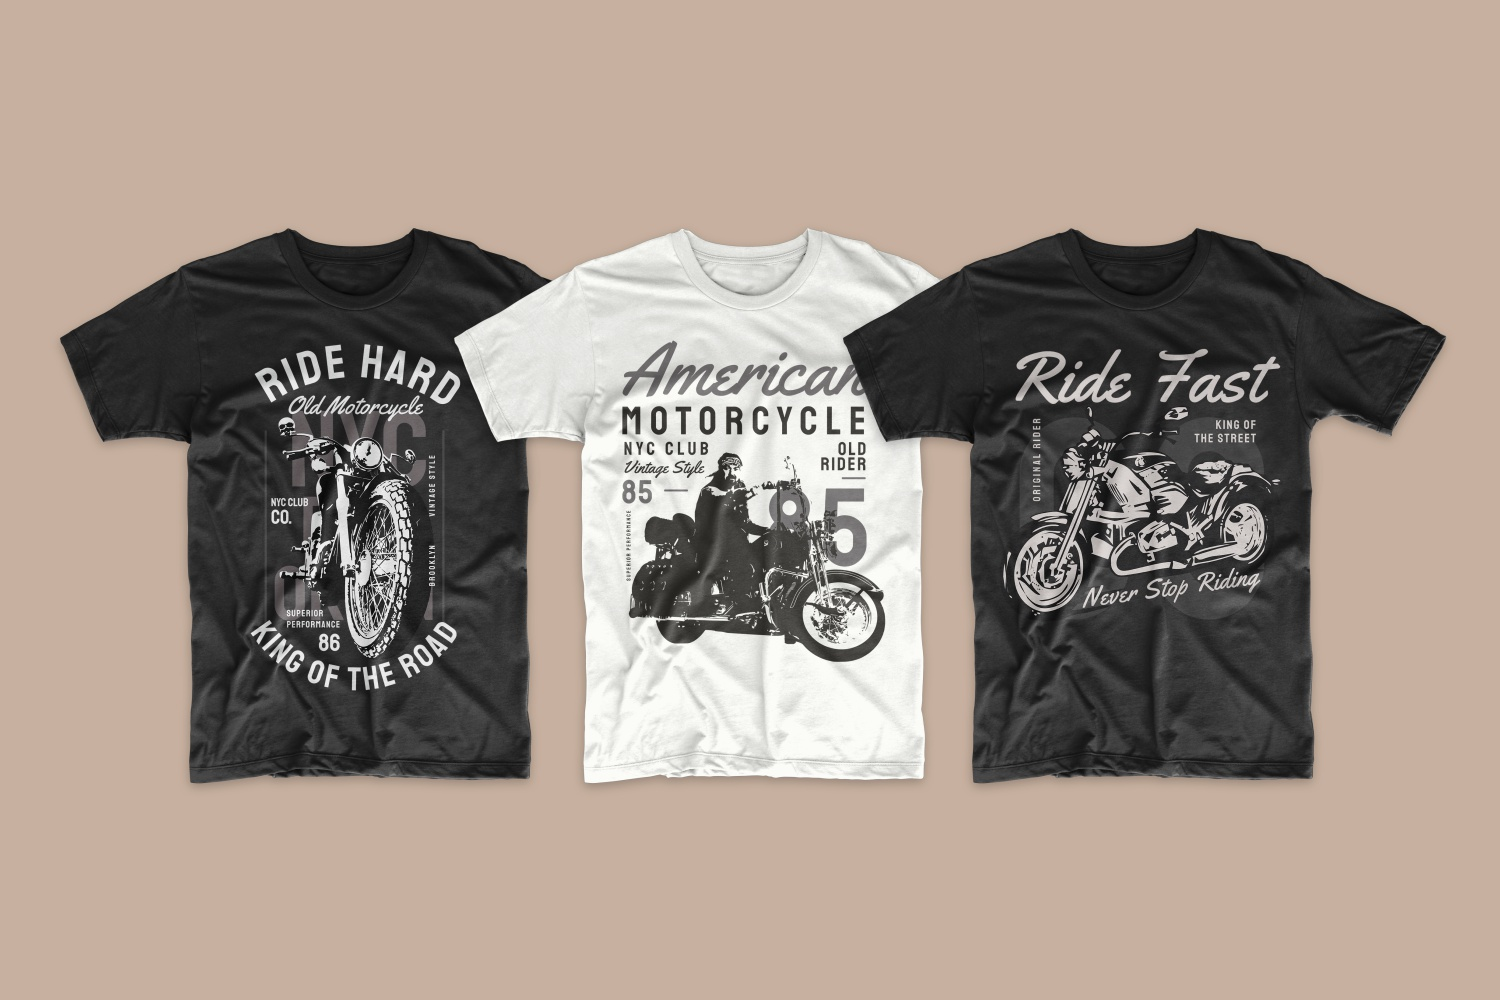 Dark shirts and one light shirt with American motorcyclists.